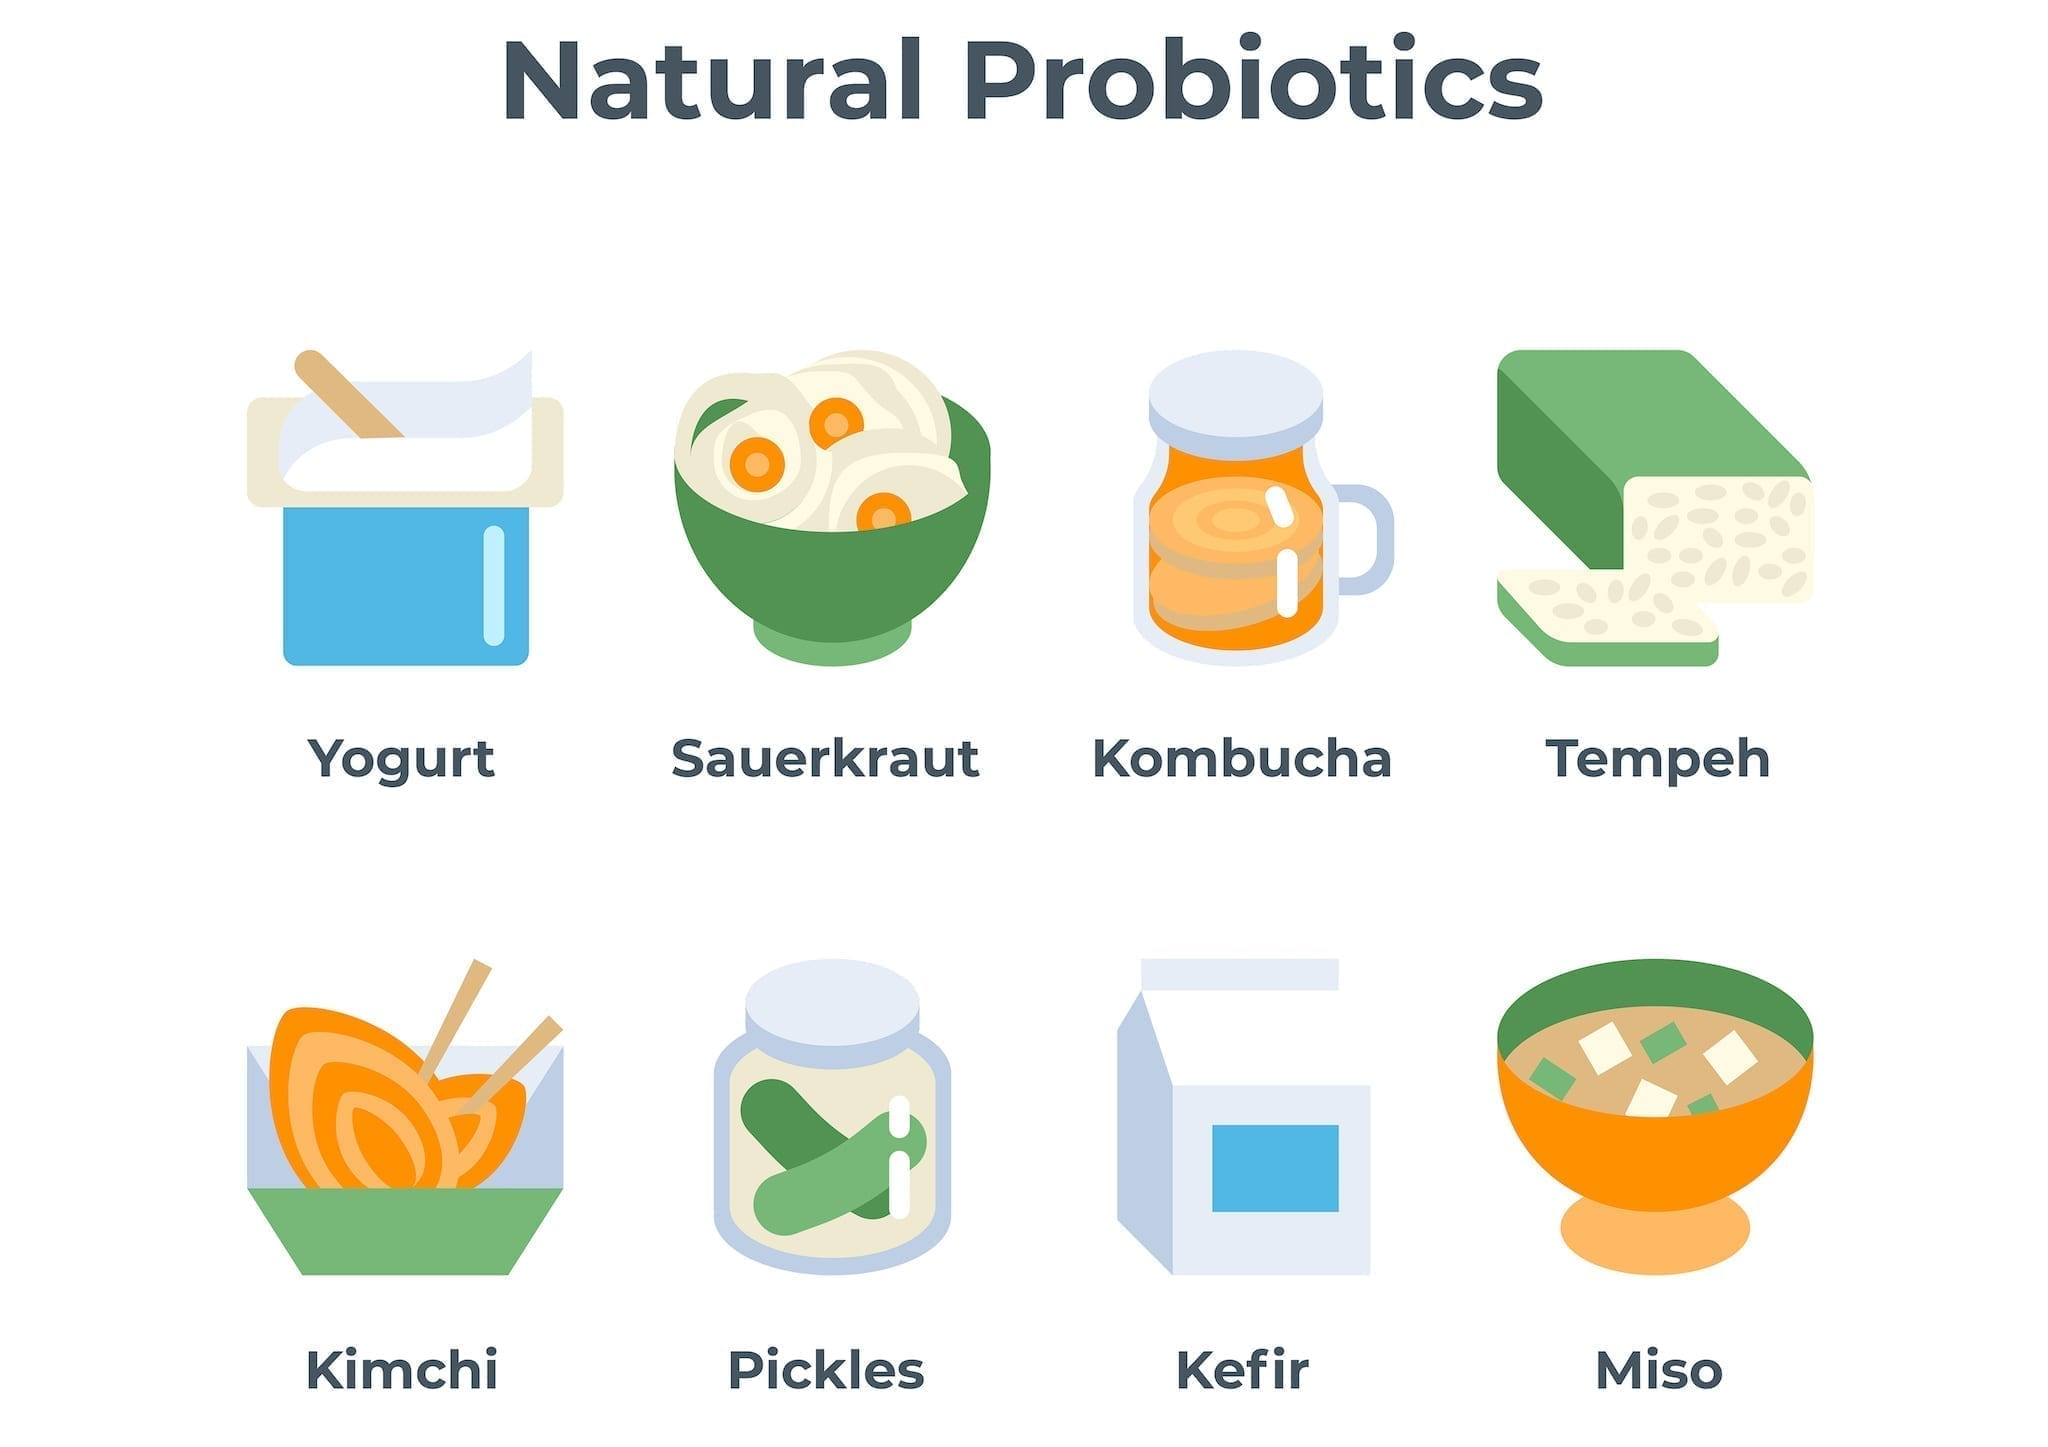 Natural probiotic foods